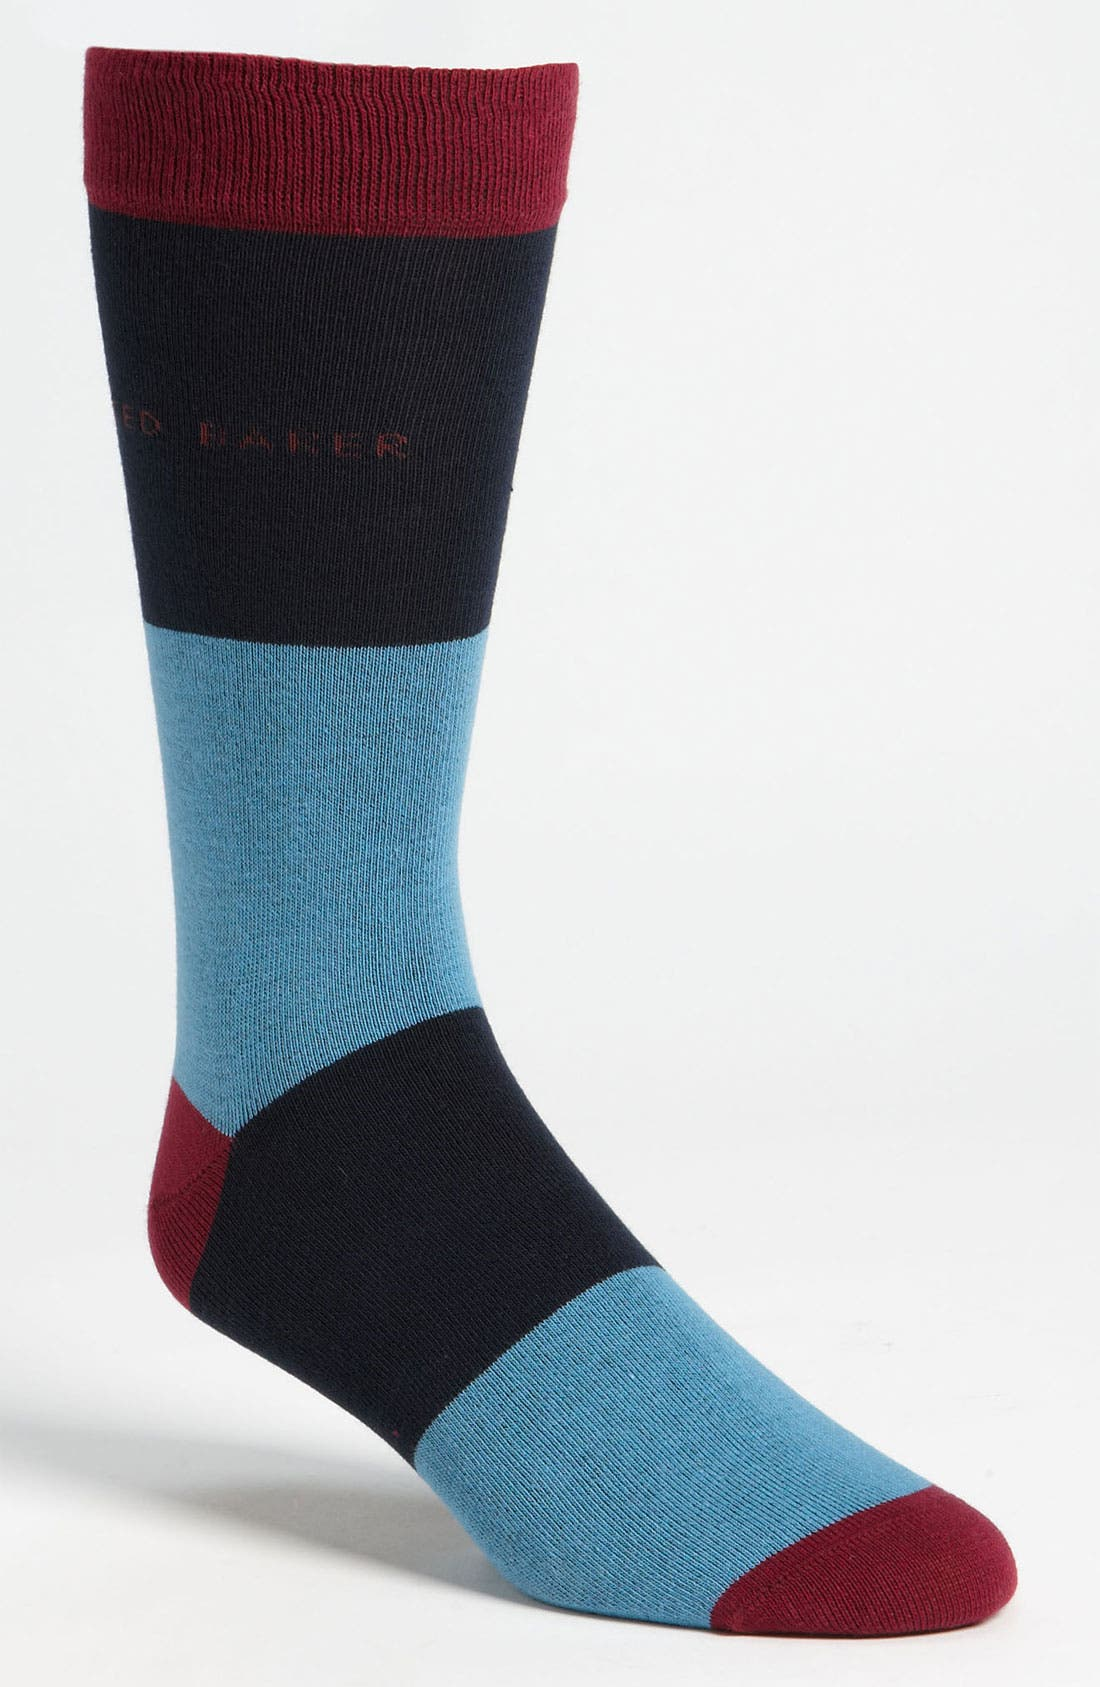 Alternate Image 1 Selected - Ted Baker London 'Large Stripe' Socks